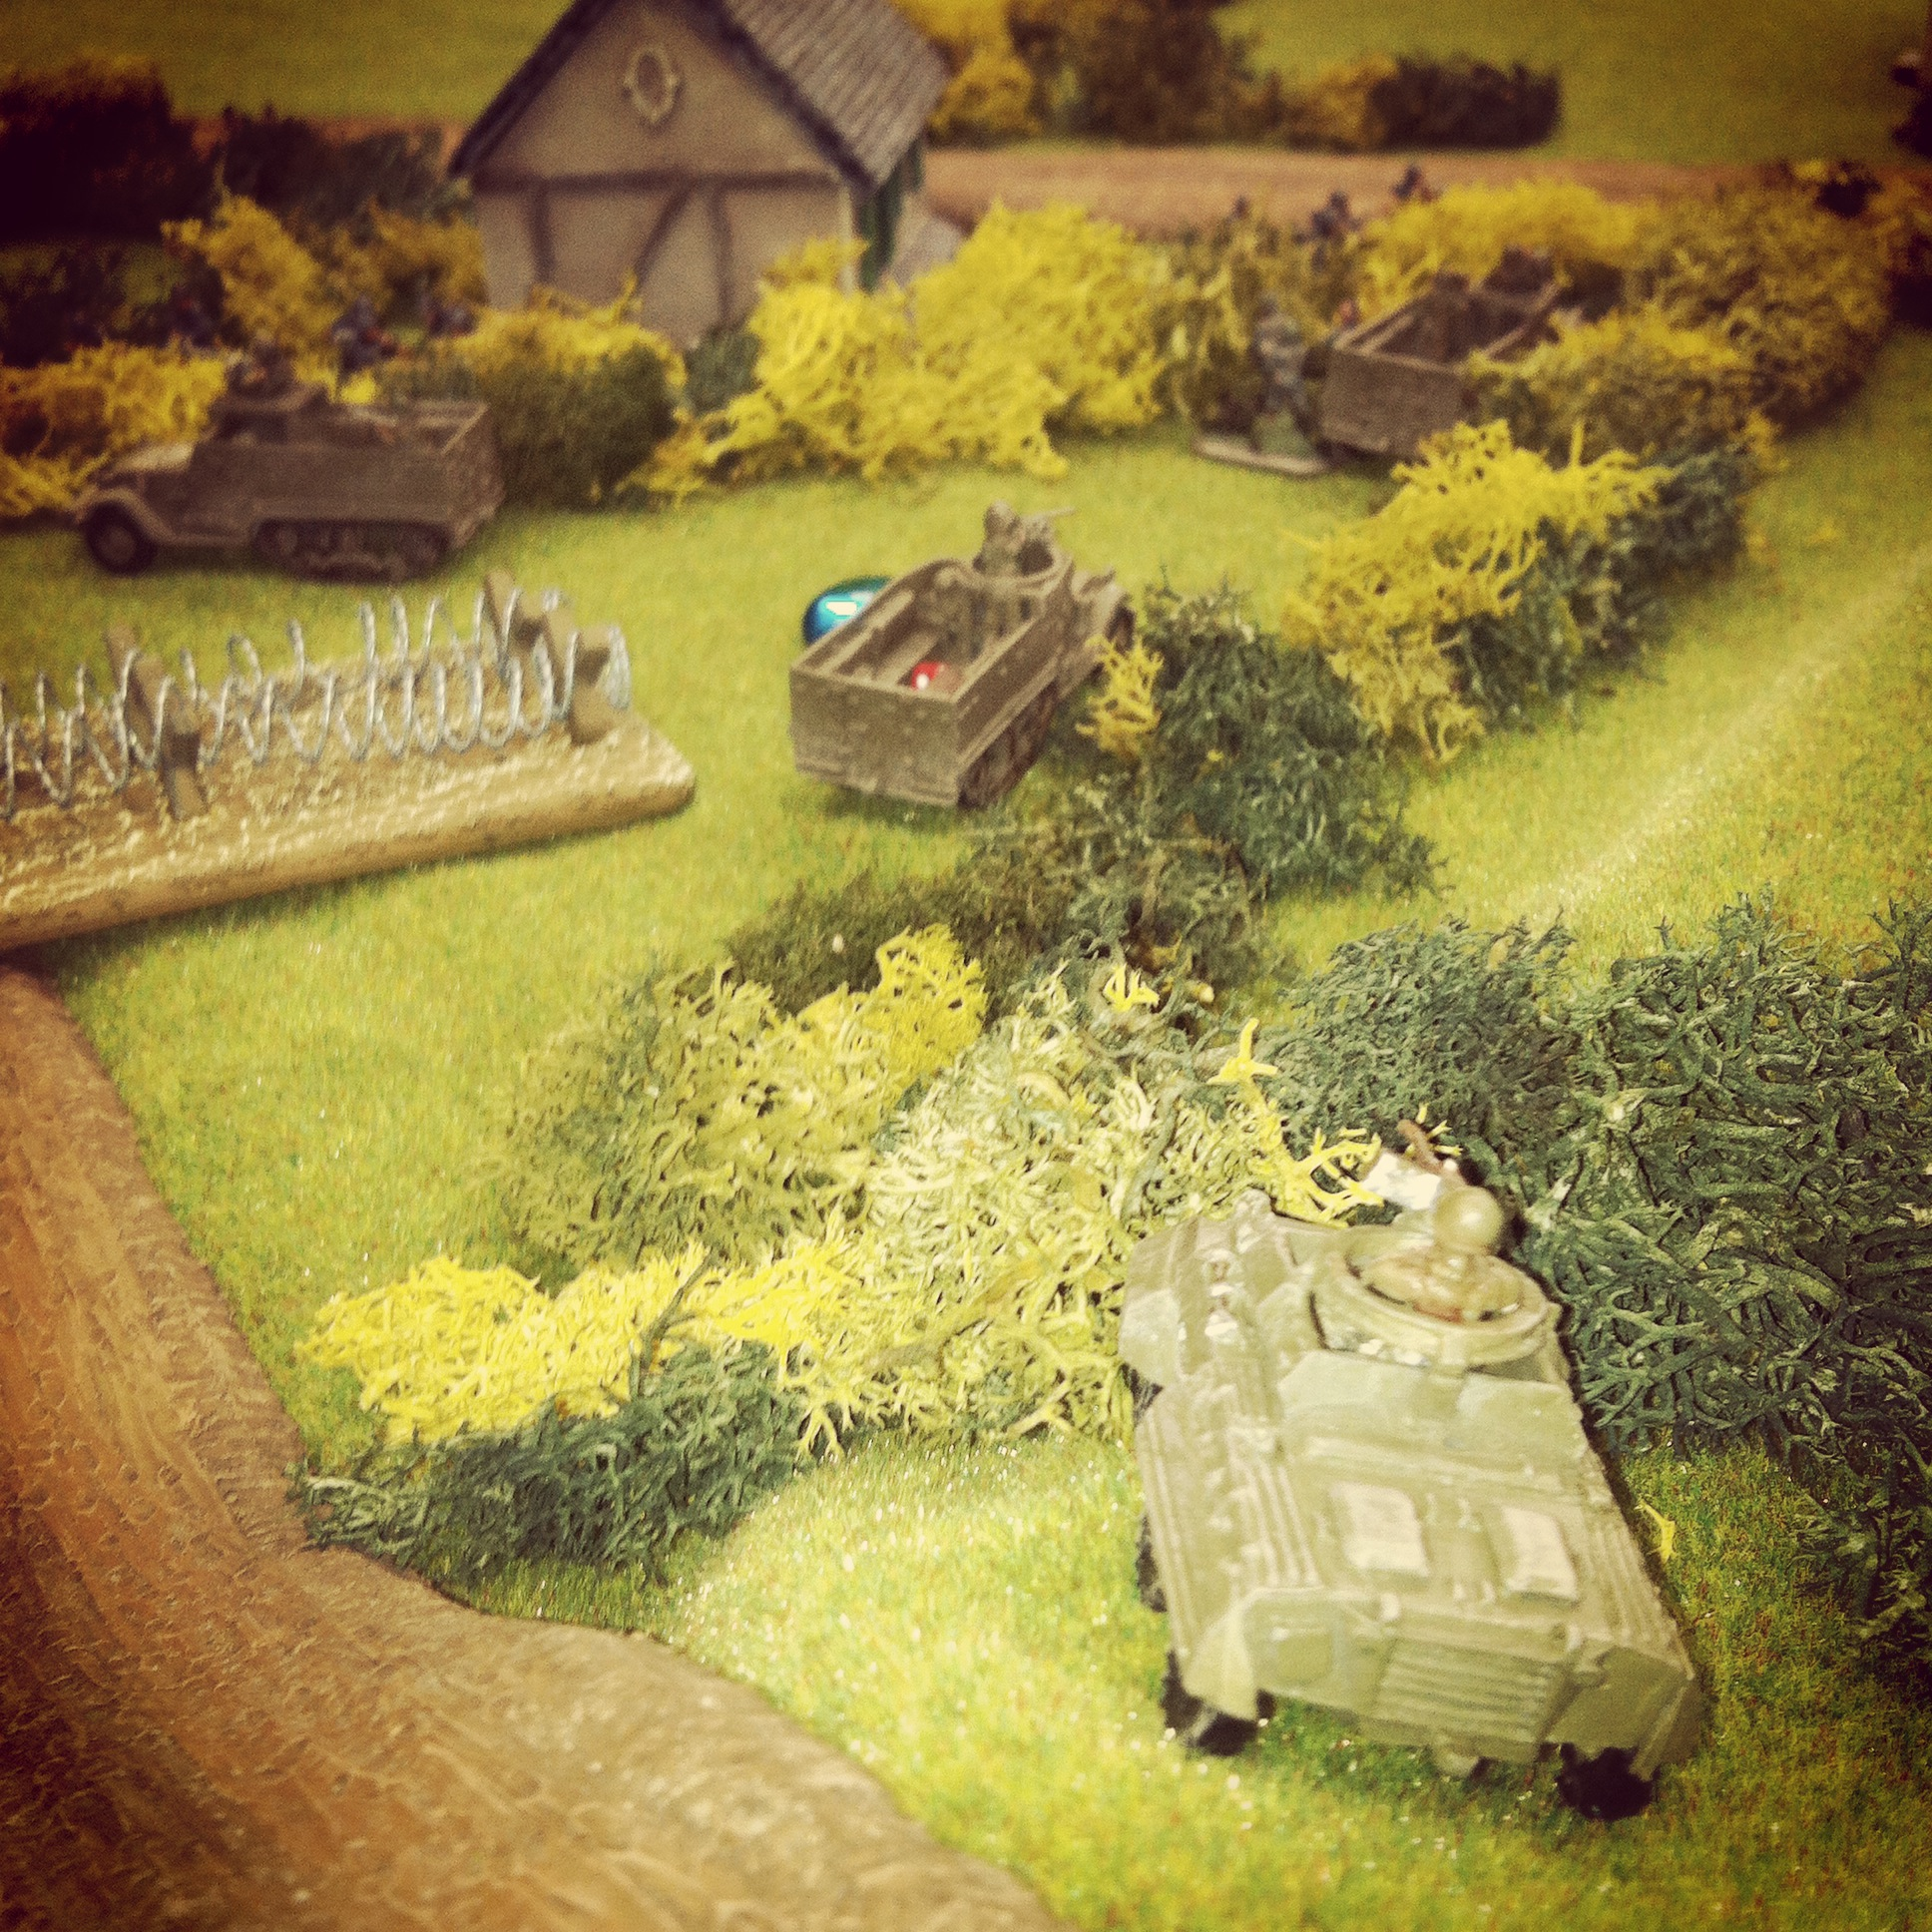 The reconunit moves to overlook the German position near the objective houseas US half tracks roll into position